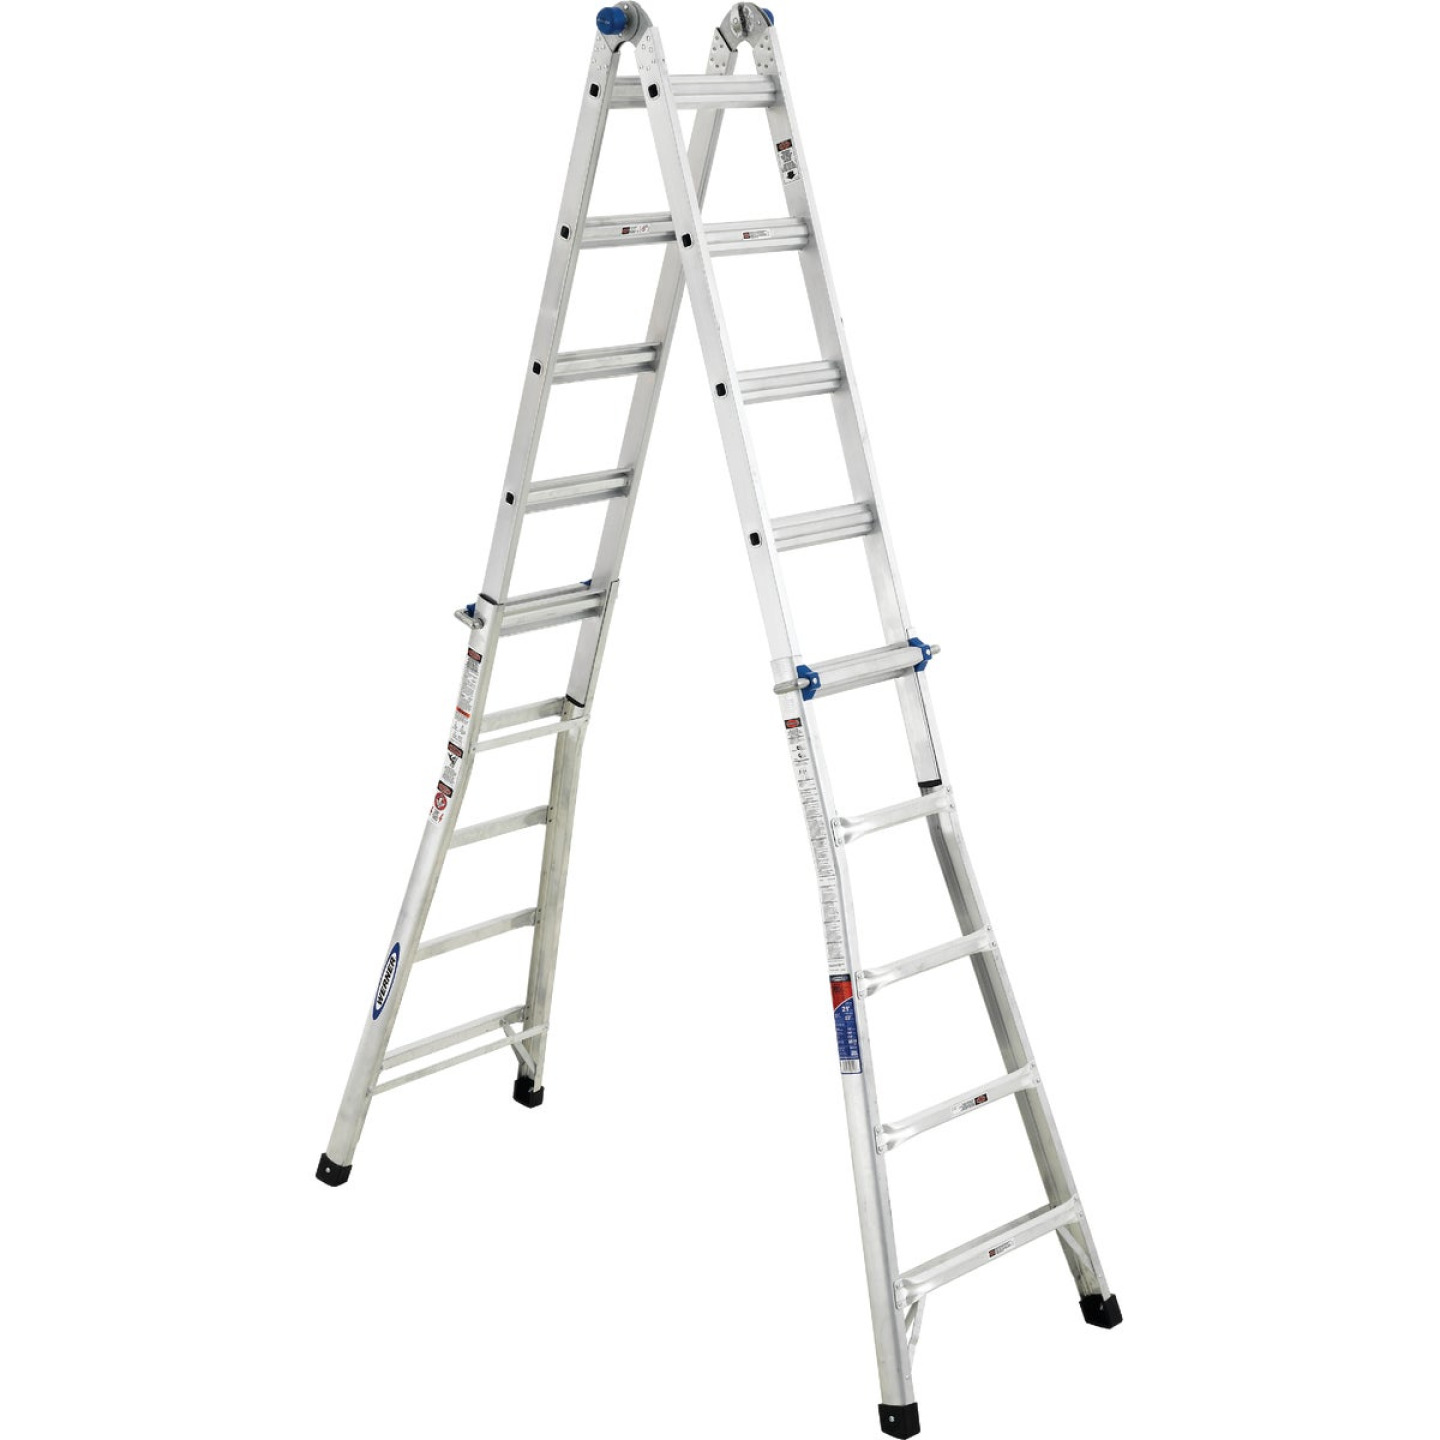 Werner 22 Ft. Aluminum Multi-Position Telescoping Ladder with 300 Lb. Load Capacity Type IA Ladder Rating Image 6